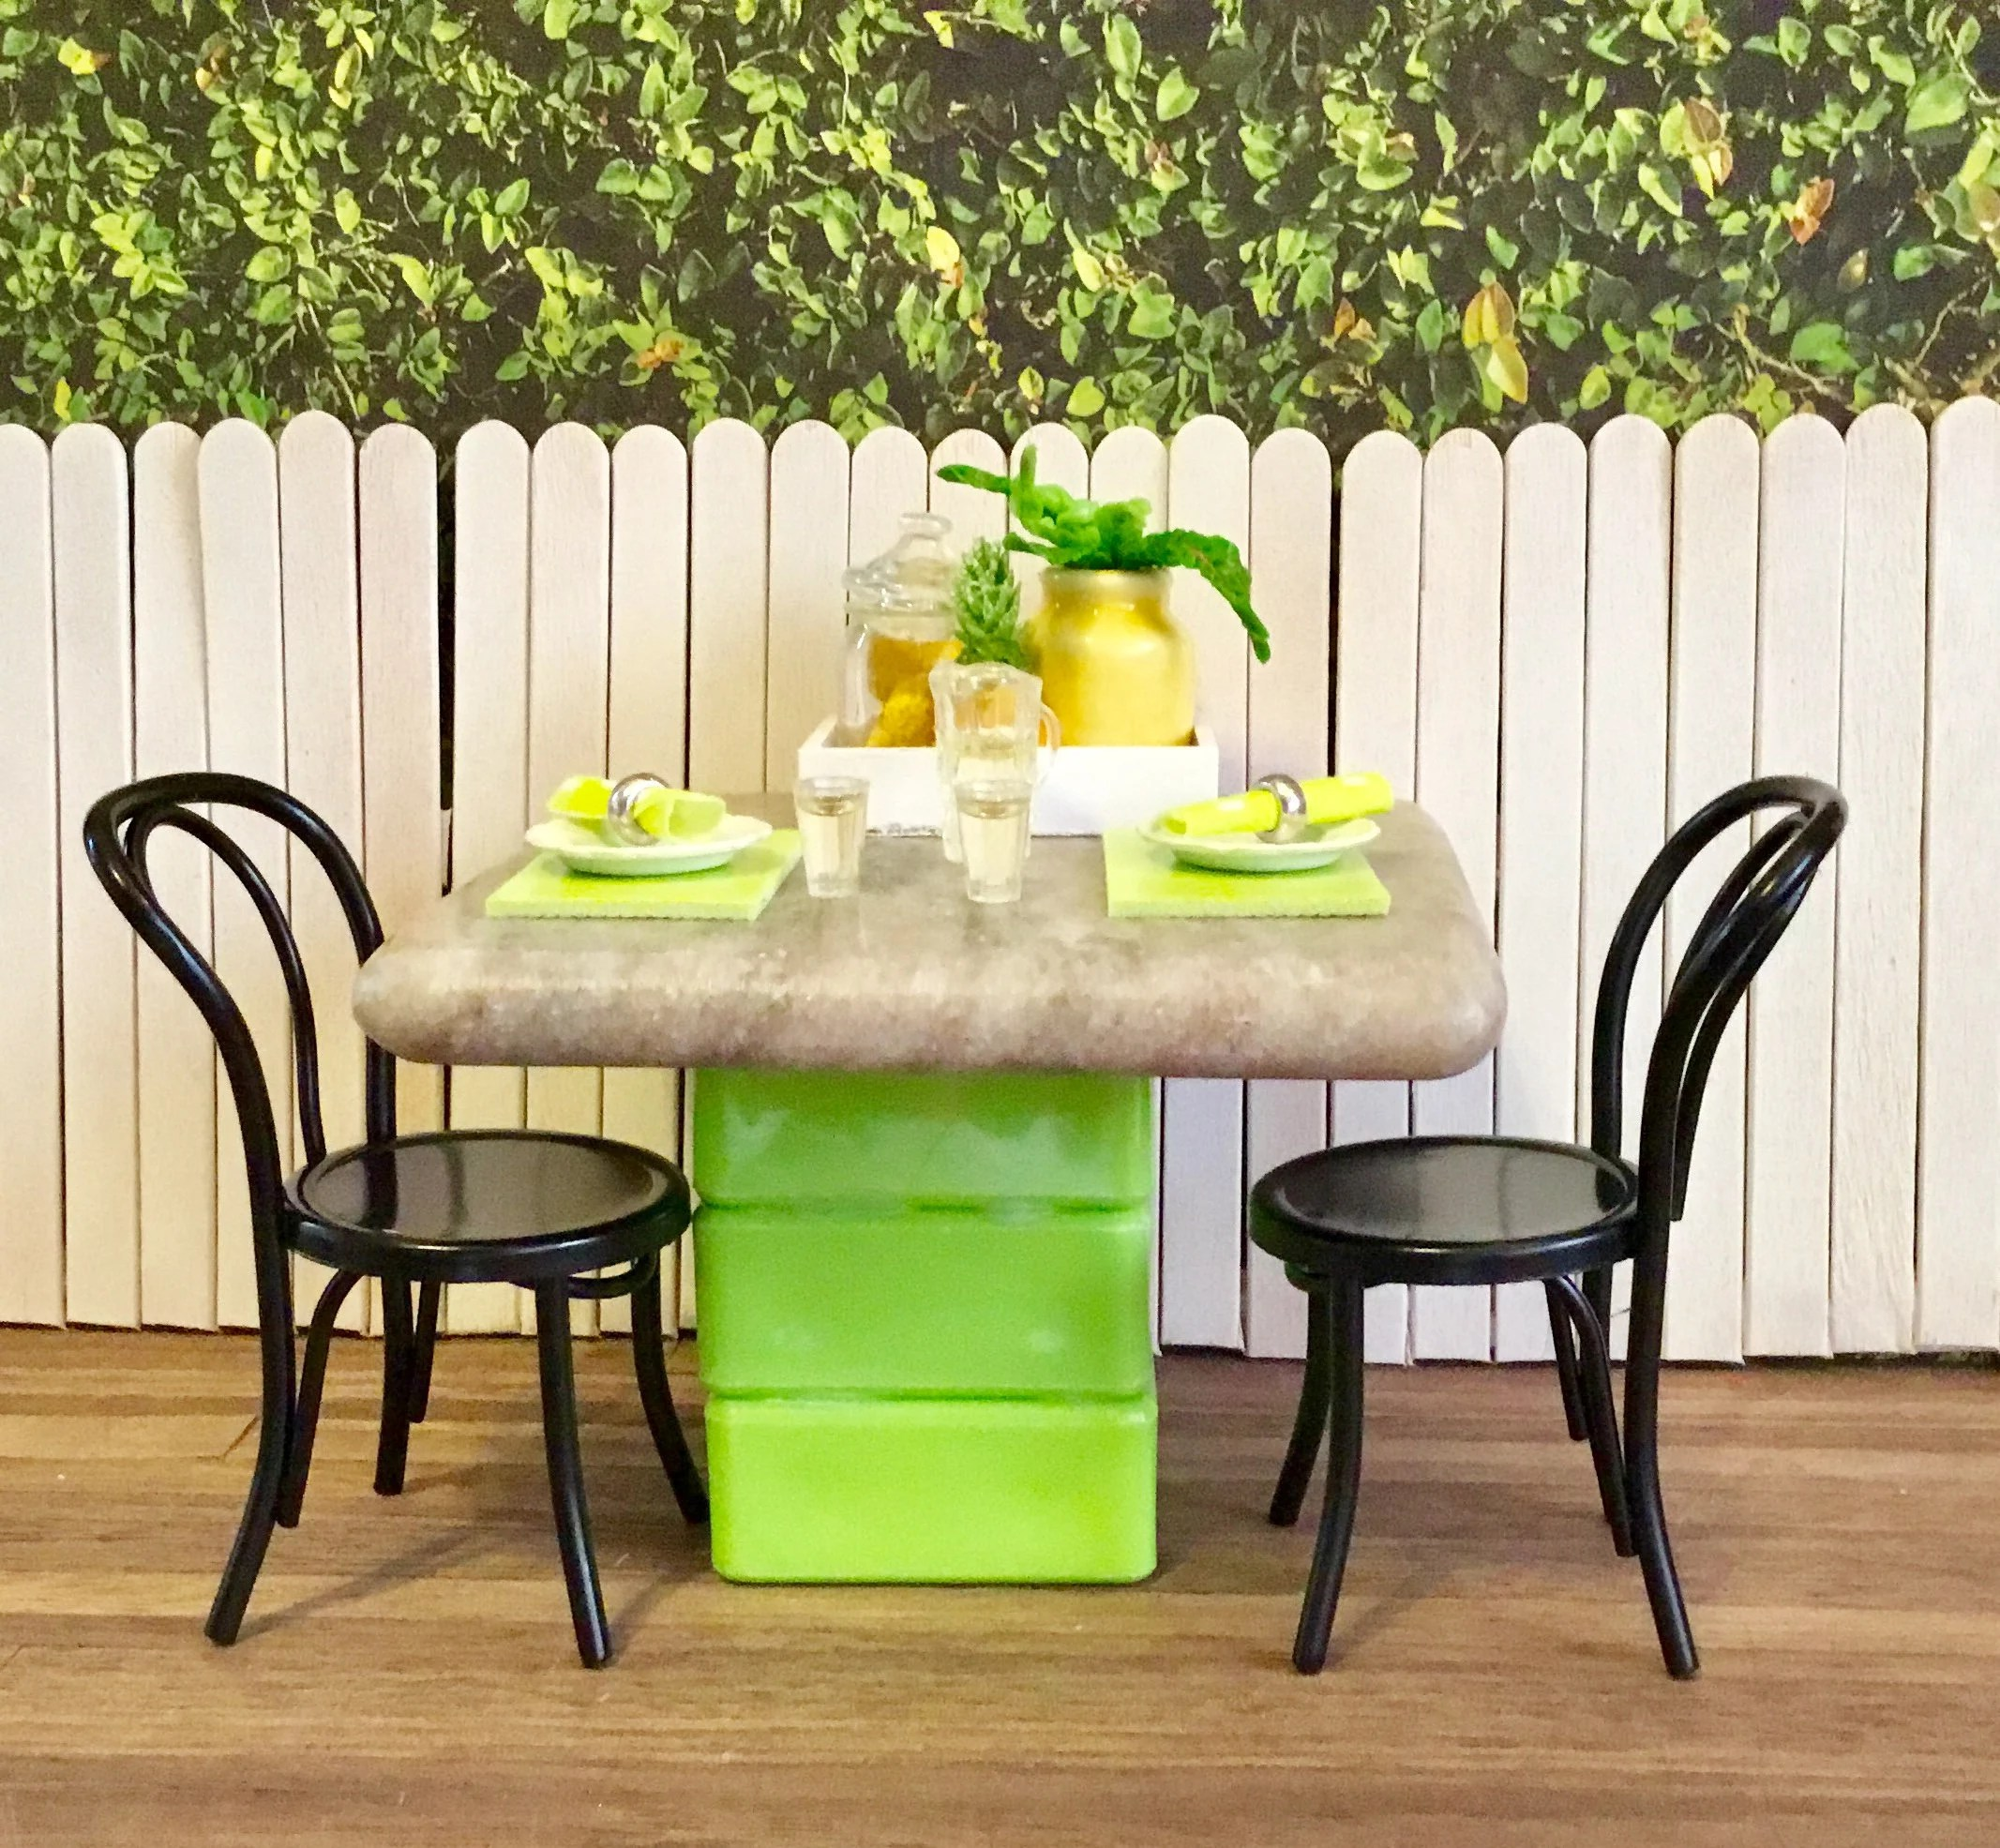 Lime Green Chairs Dollhouse Miniature Table Chairs Lime Green Placemats Cloth Napkins Water Pitcher Water Glasses Pineapple 1 12 Scale